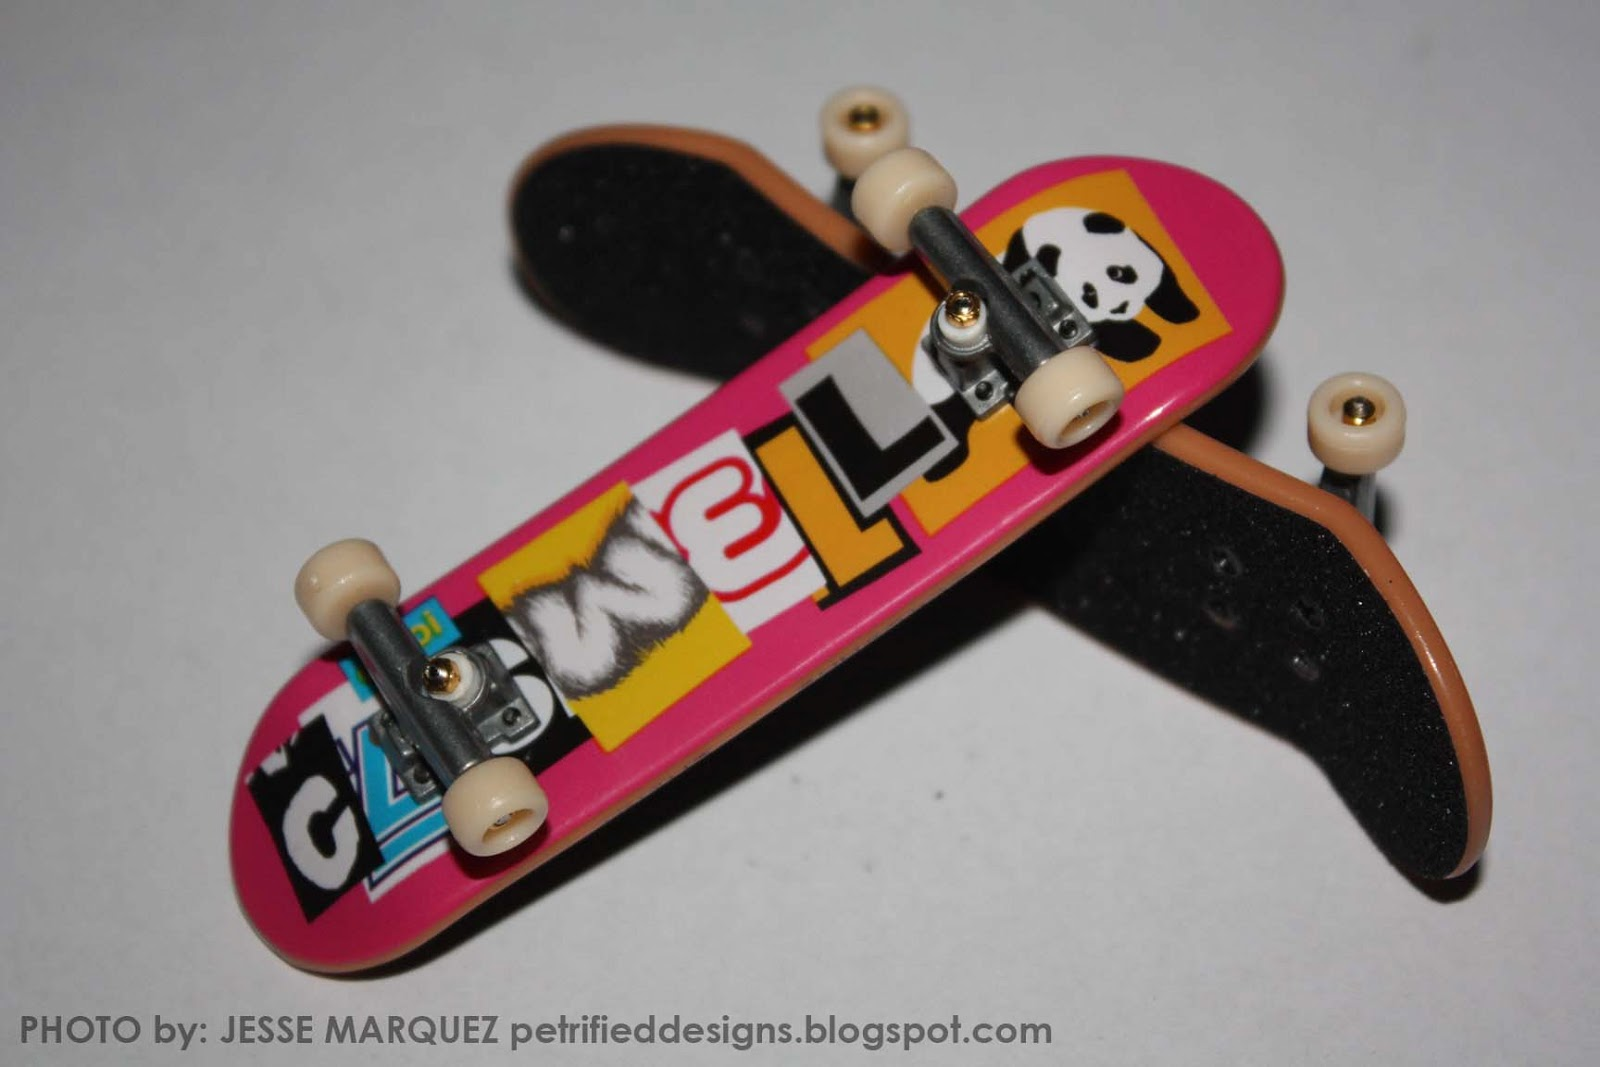 Randomly random toy review tech deck fingerboards much in fingerboarding you can make obstacles using cement and wood to make your own mini skatepark lol and fingerboards can save you from boredom d baanklon Image collections